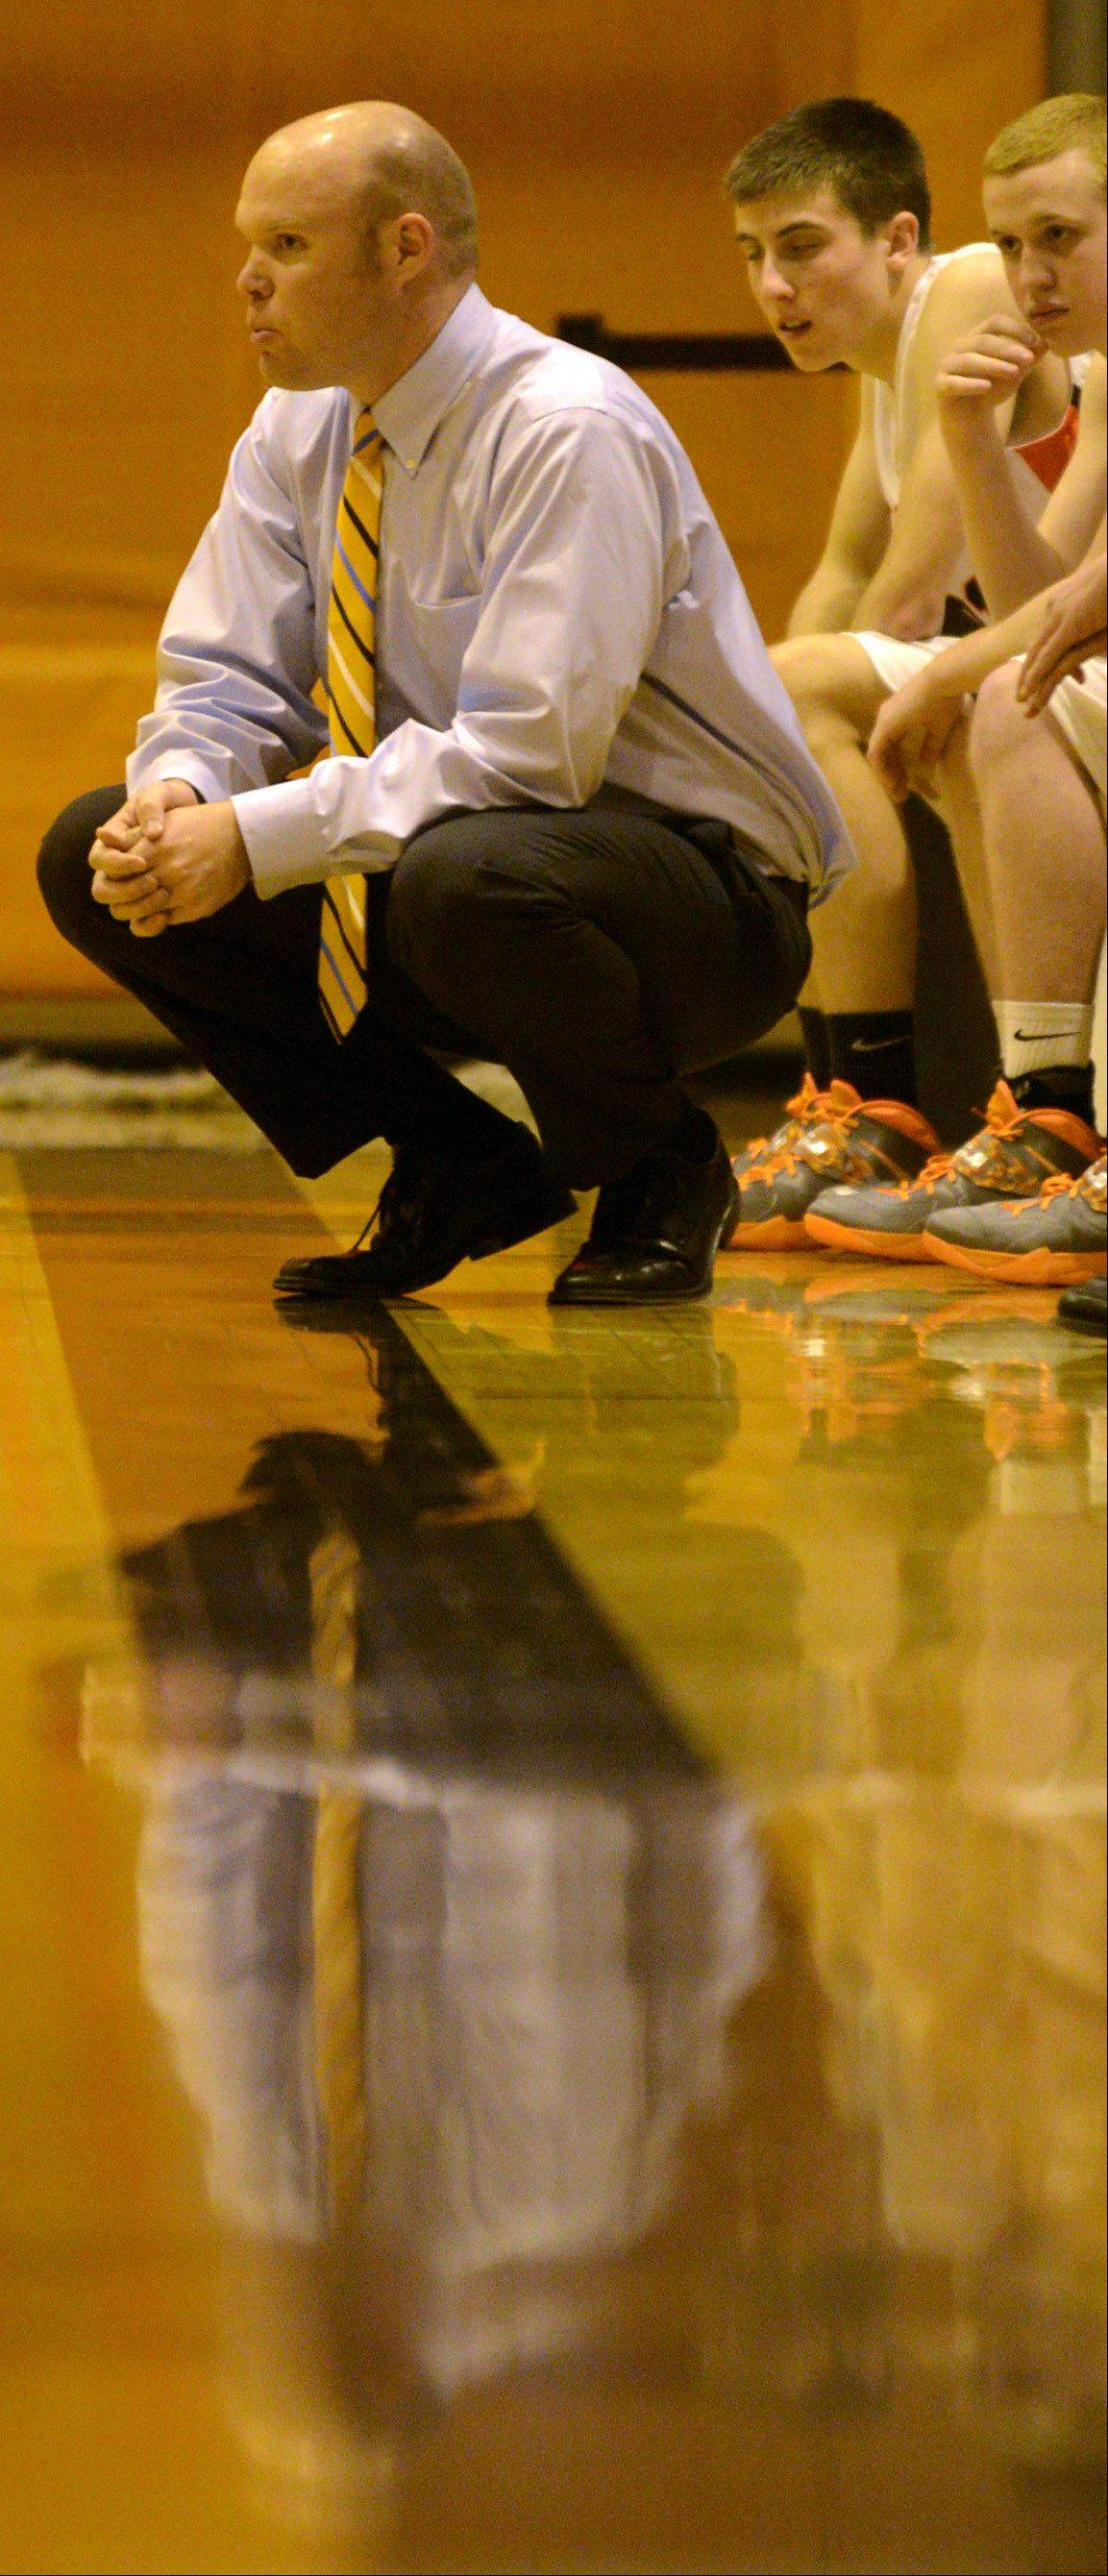 First-year Buffalo Grove coach Keith Peterson keeps his eye on the action against Elgin at Buffalo Grove on Monday evening.